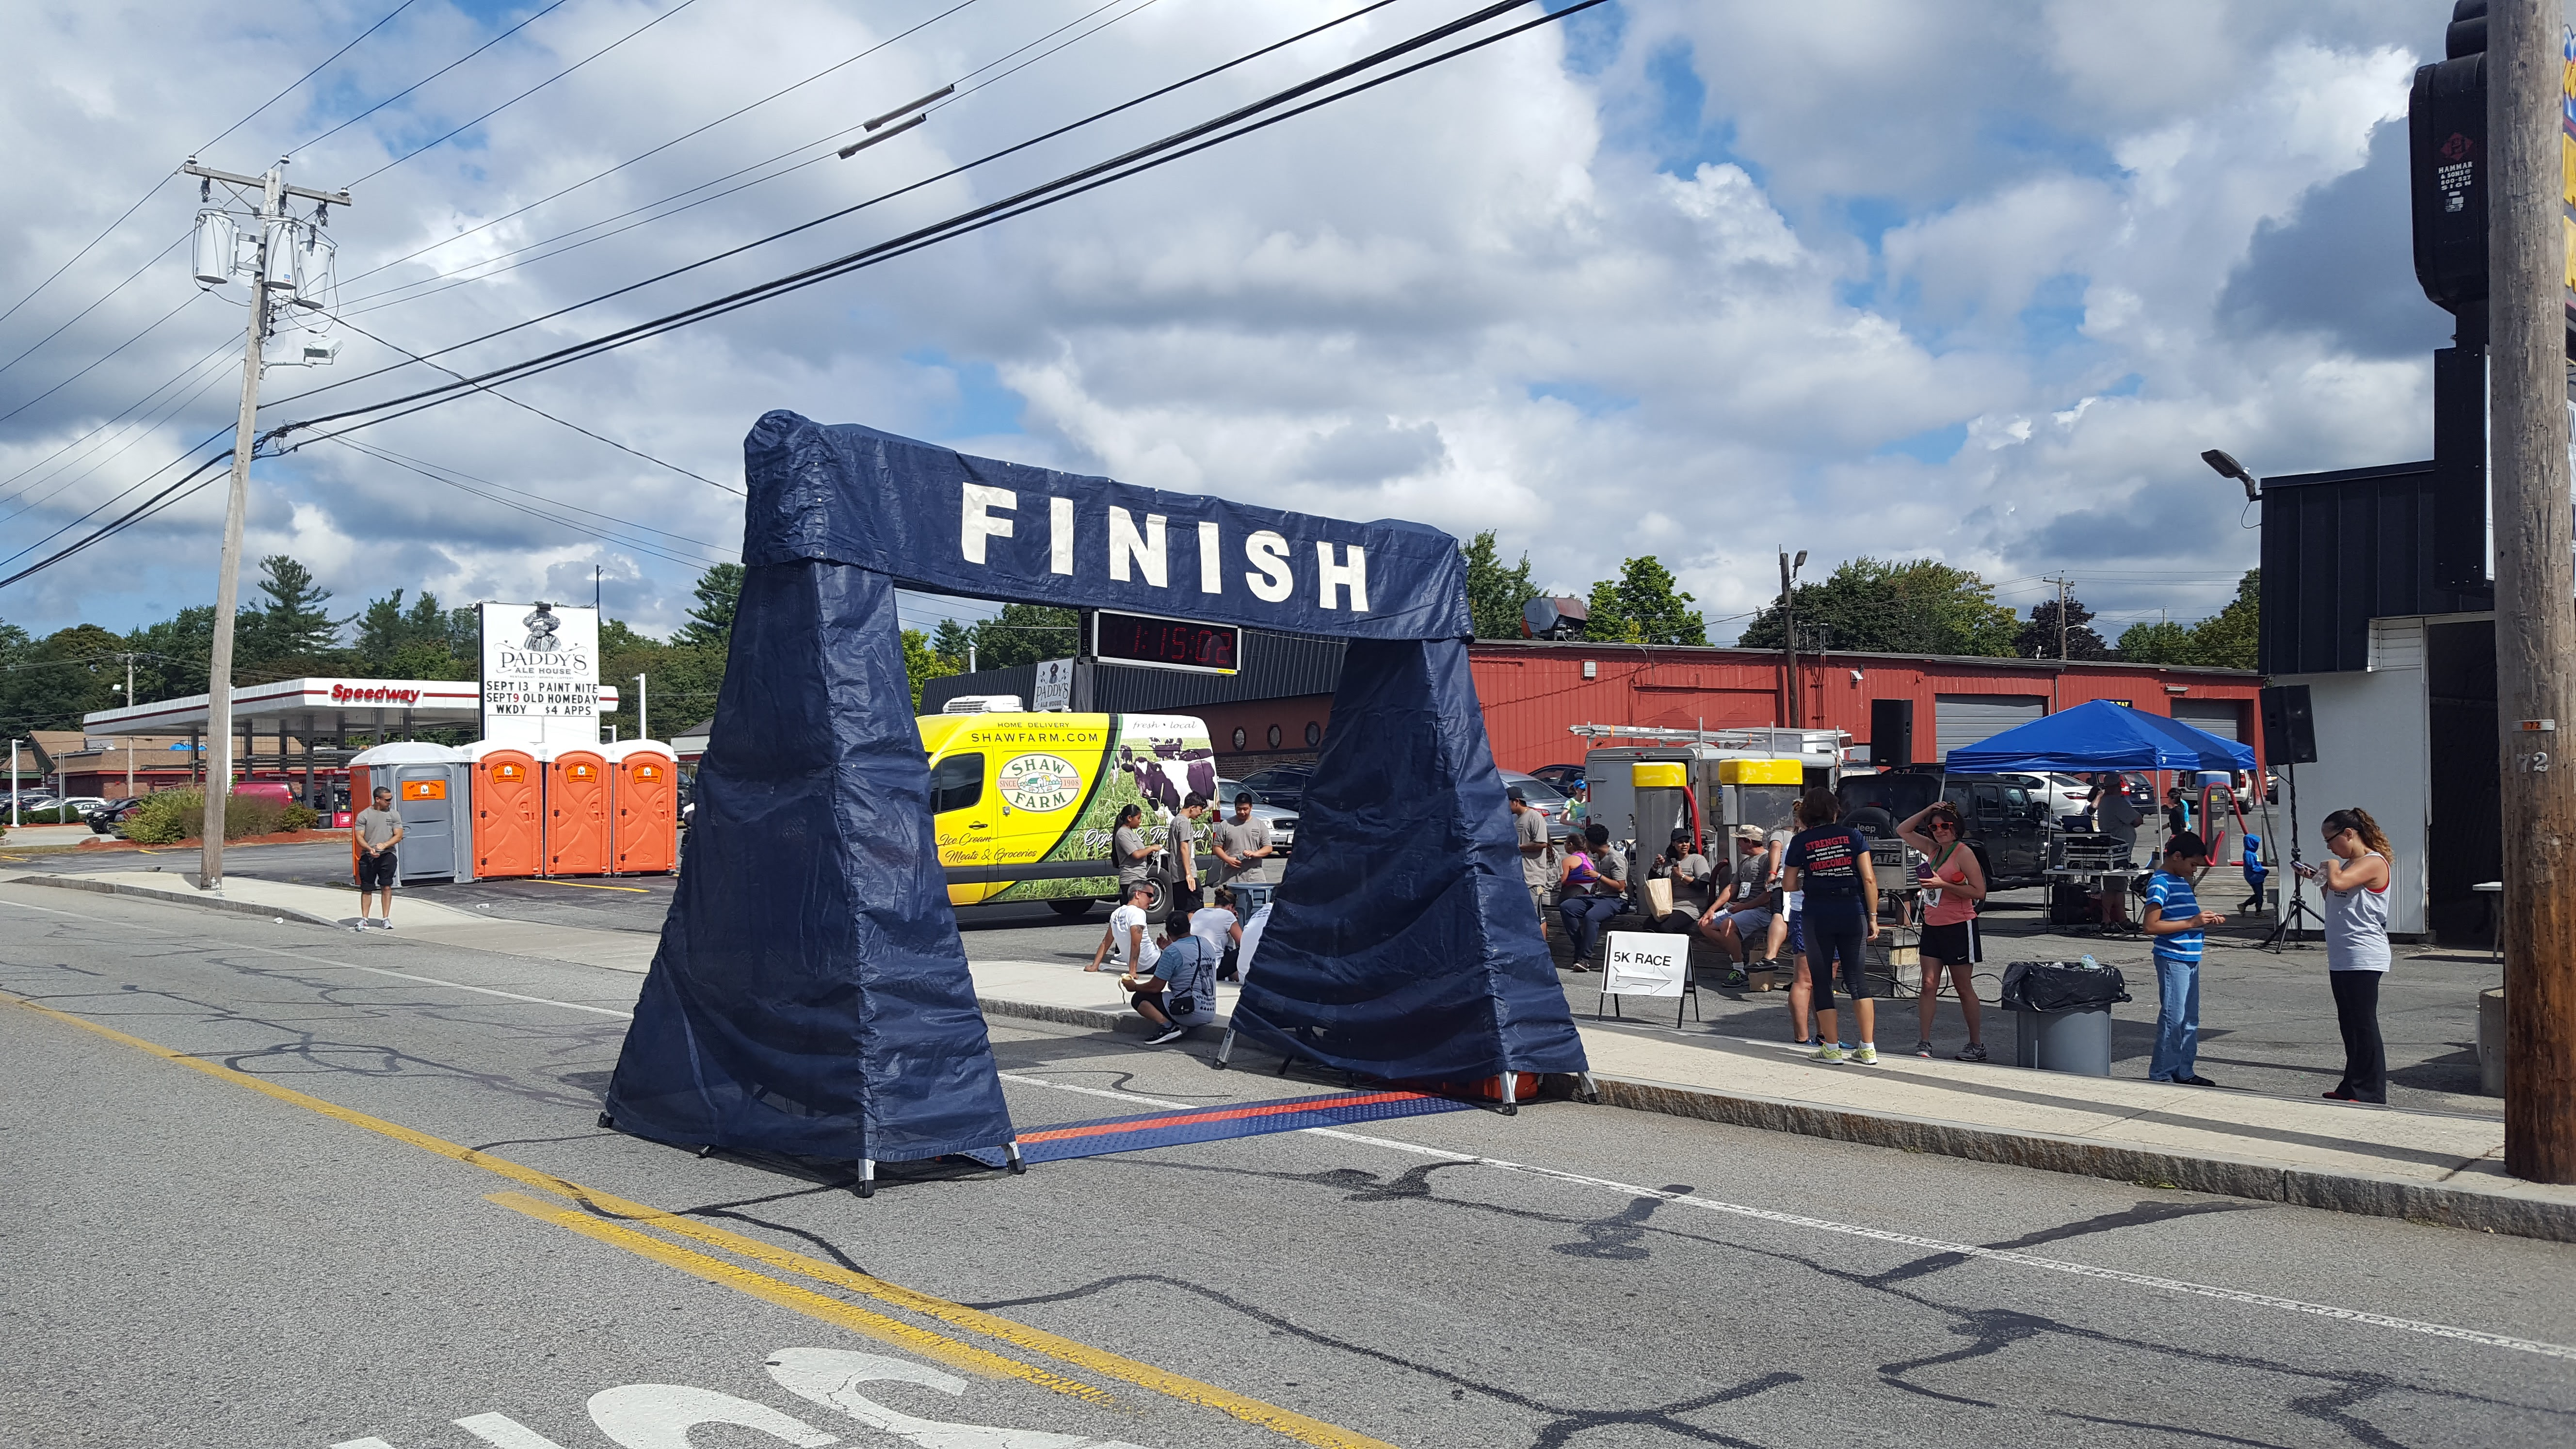 Dracut 5k Walk/Run Finish Line